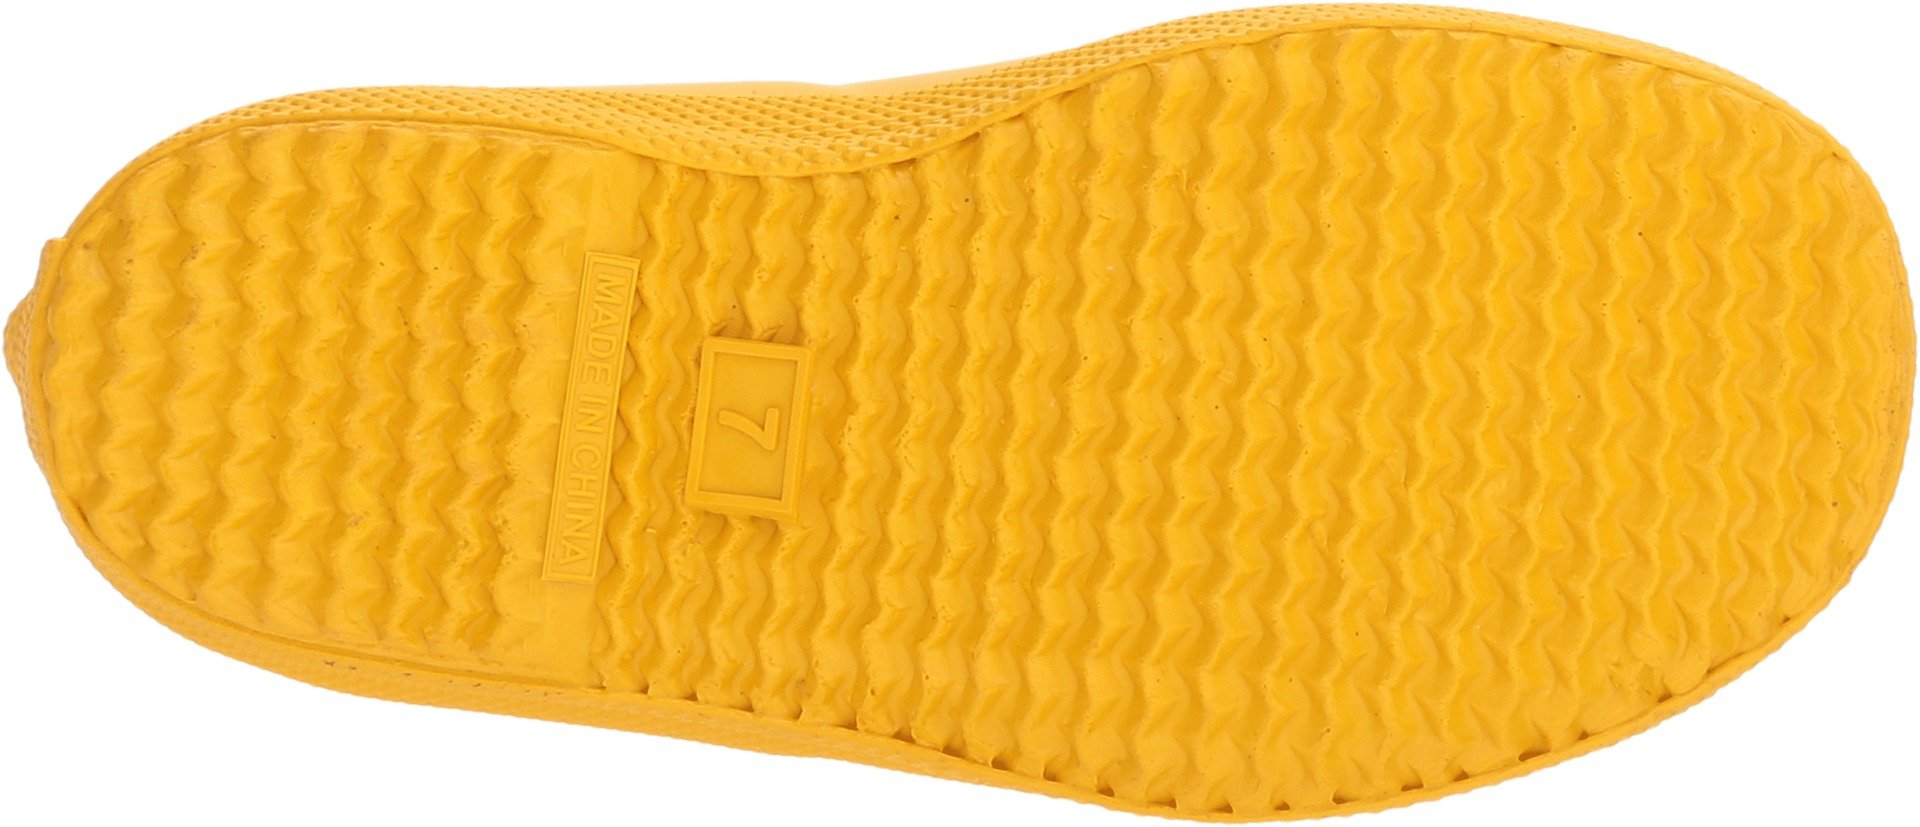 Hunter Kids Unisex First Classic (Toddler/Little Kid) Yellow 6 M US Toddler by Hunter Kids (Image #3)